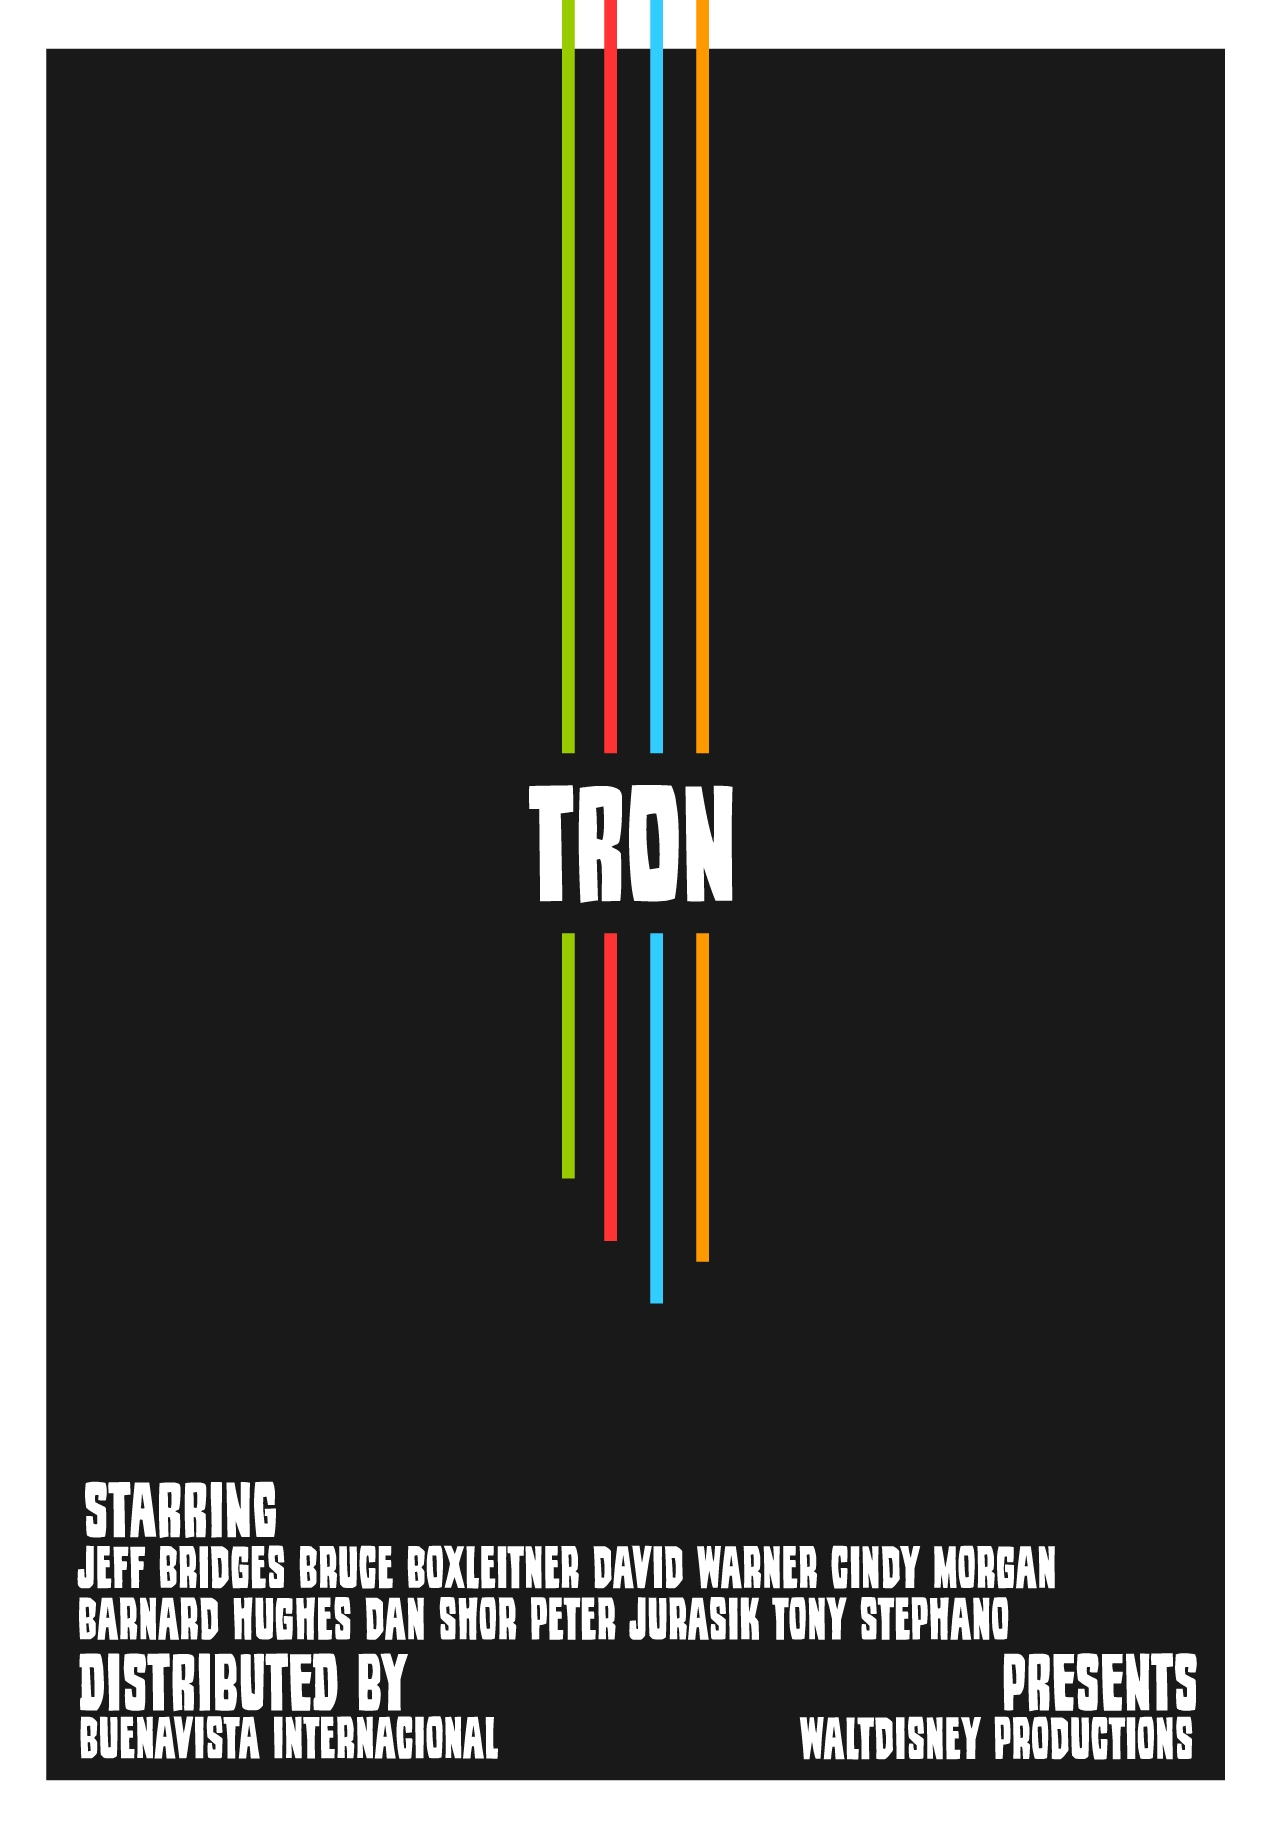 tron_posters_2020_7